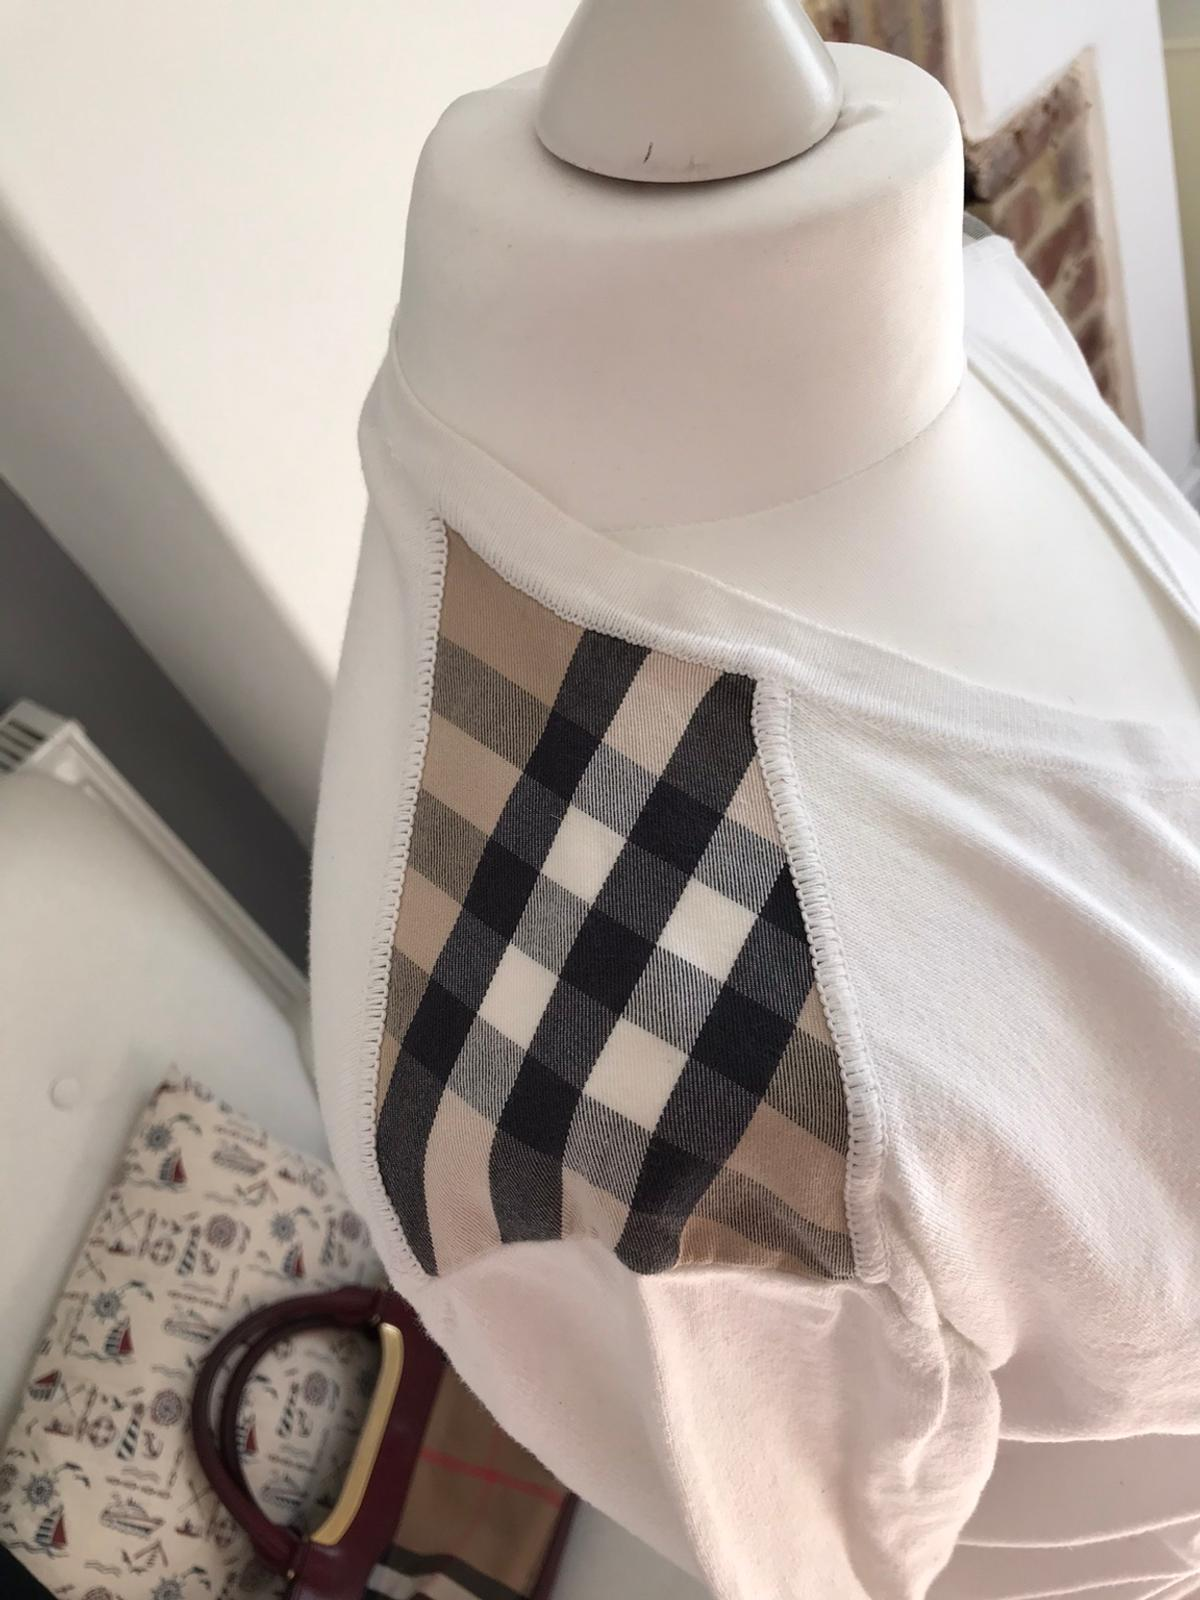 100% authentic Lovely Burberry cotton jumper Nova check on the shoulders Worn a couple of times. Excellent condition Men's size Small although I'm a Woman's medium and I wore it. Was lovey on me aswell. So could suit a man or a woman. No offers please!